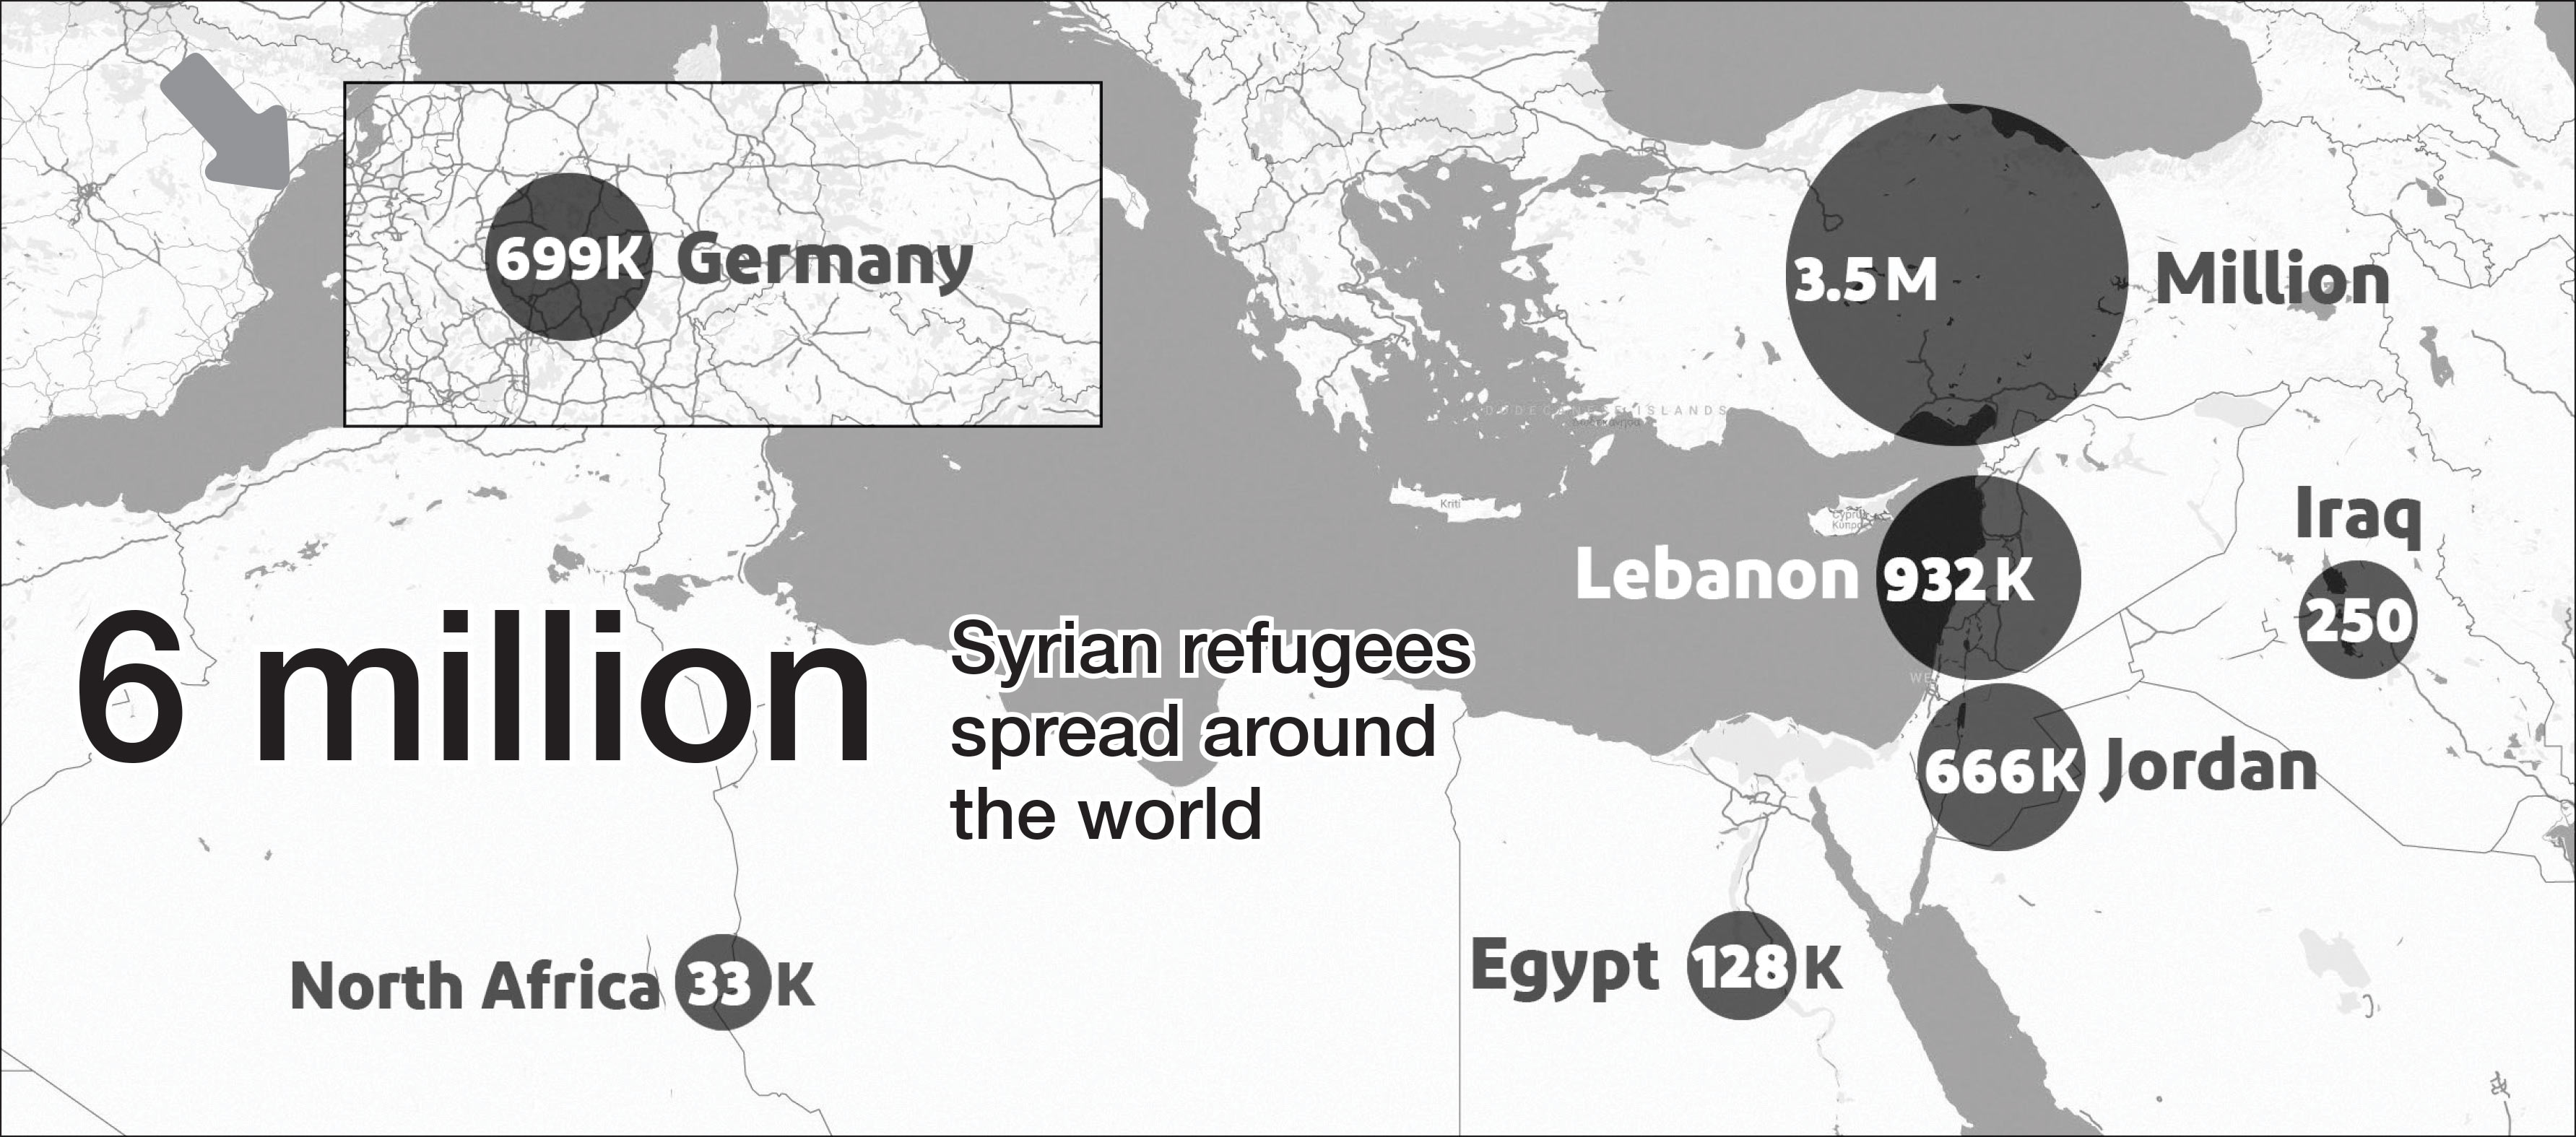 Source: UNHCR, DW Map showing the spread of Syrian refugees in neighbouring countries and Europe 2018 (United Nations)